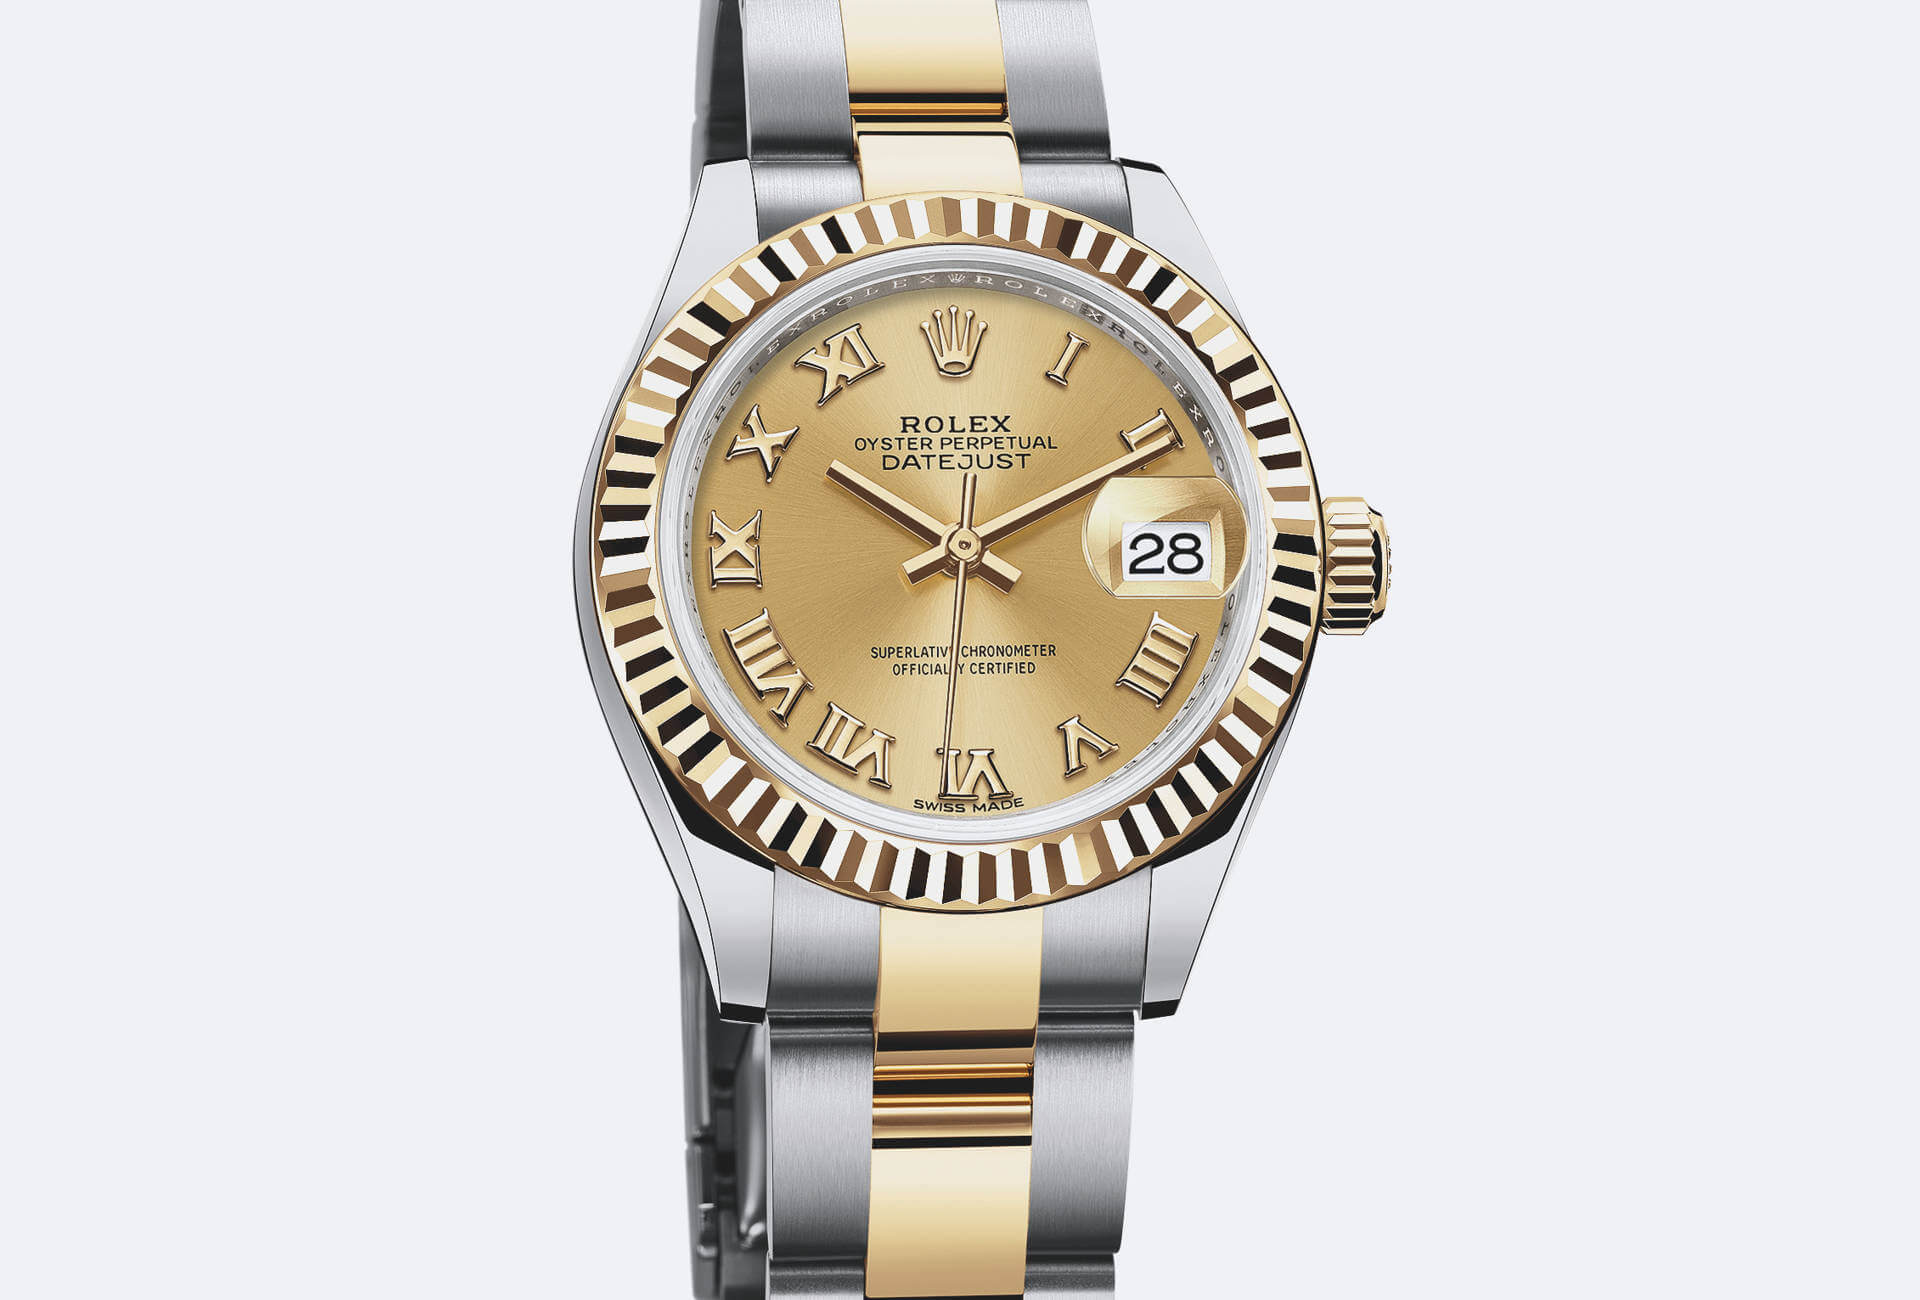 Top 5 Ladies Watches On Instagram Fhh Journal